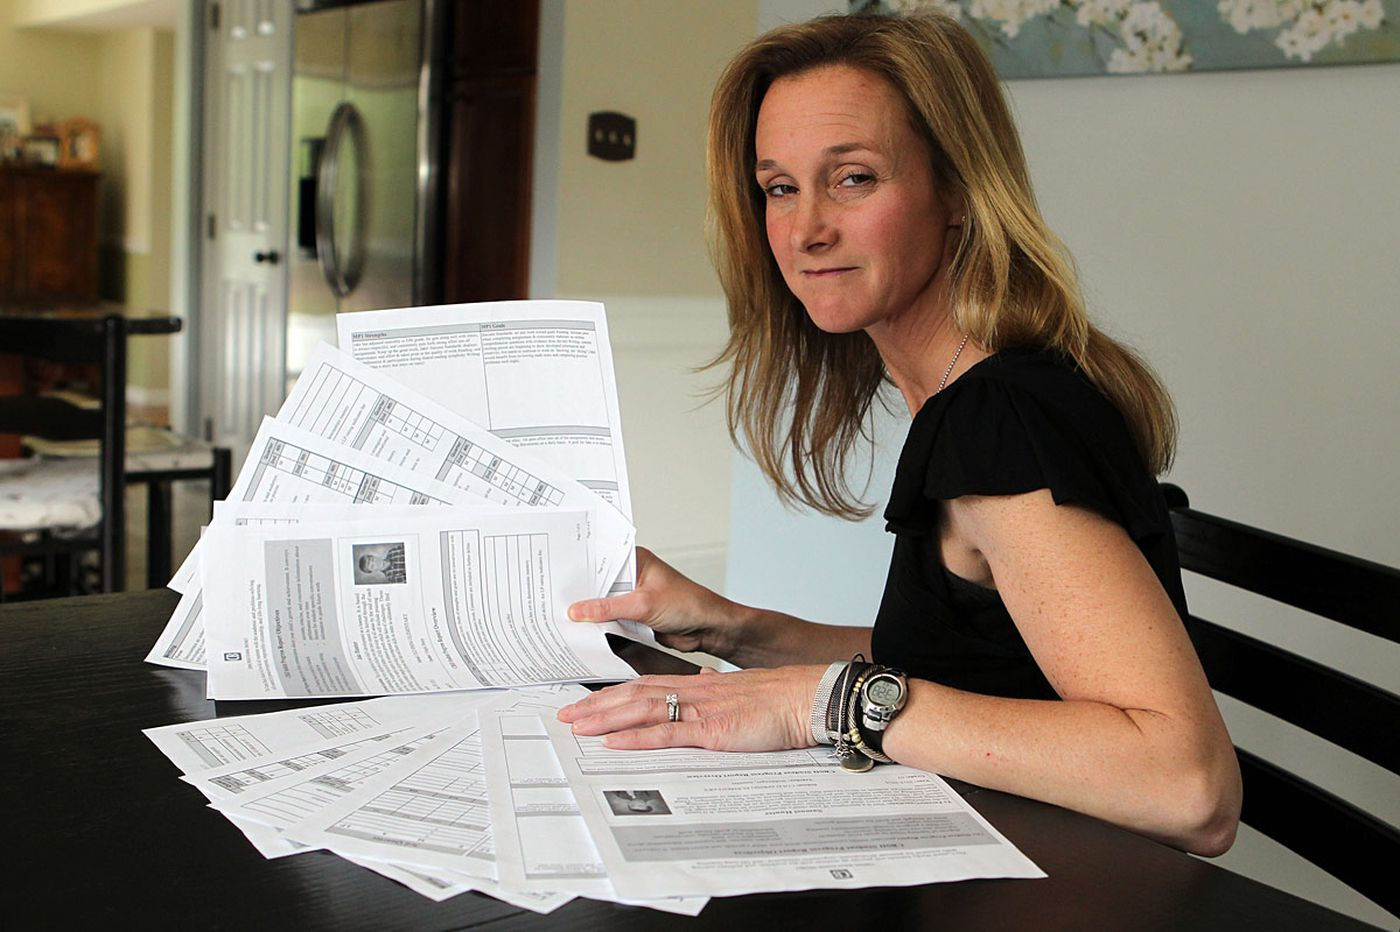 Many parents give new mind-boggling report cards an F